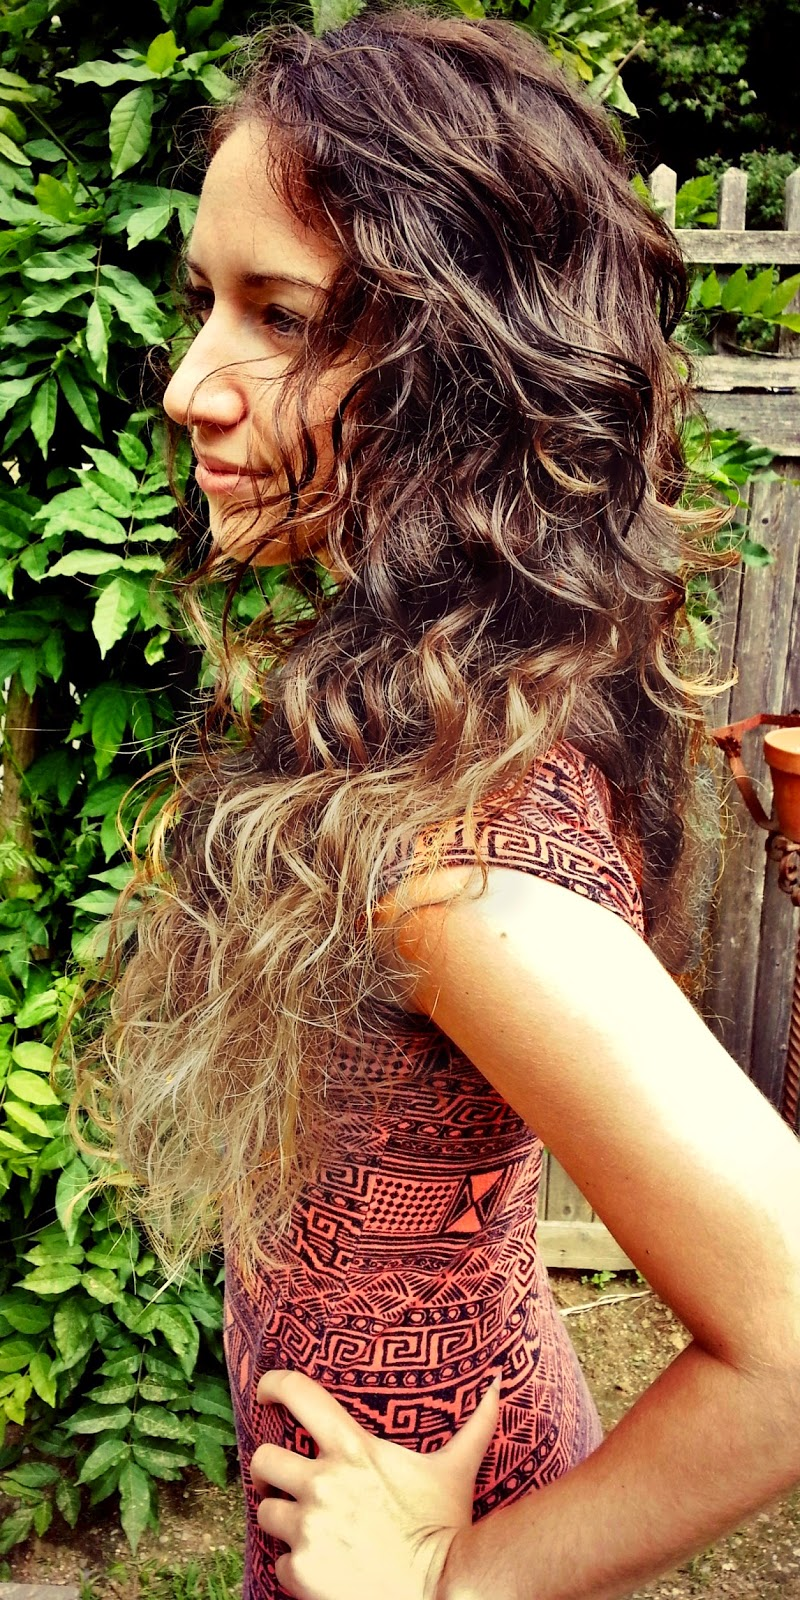 Naturally long curly hair